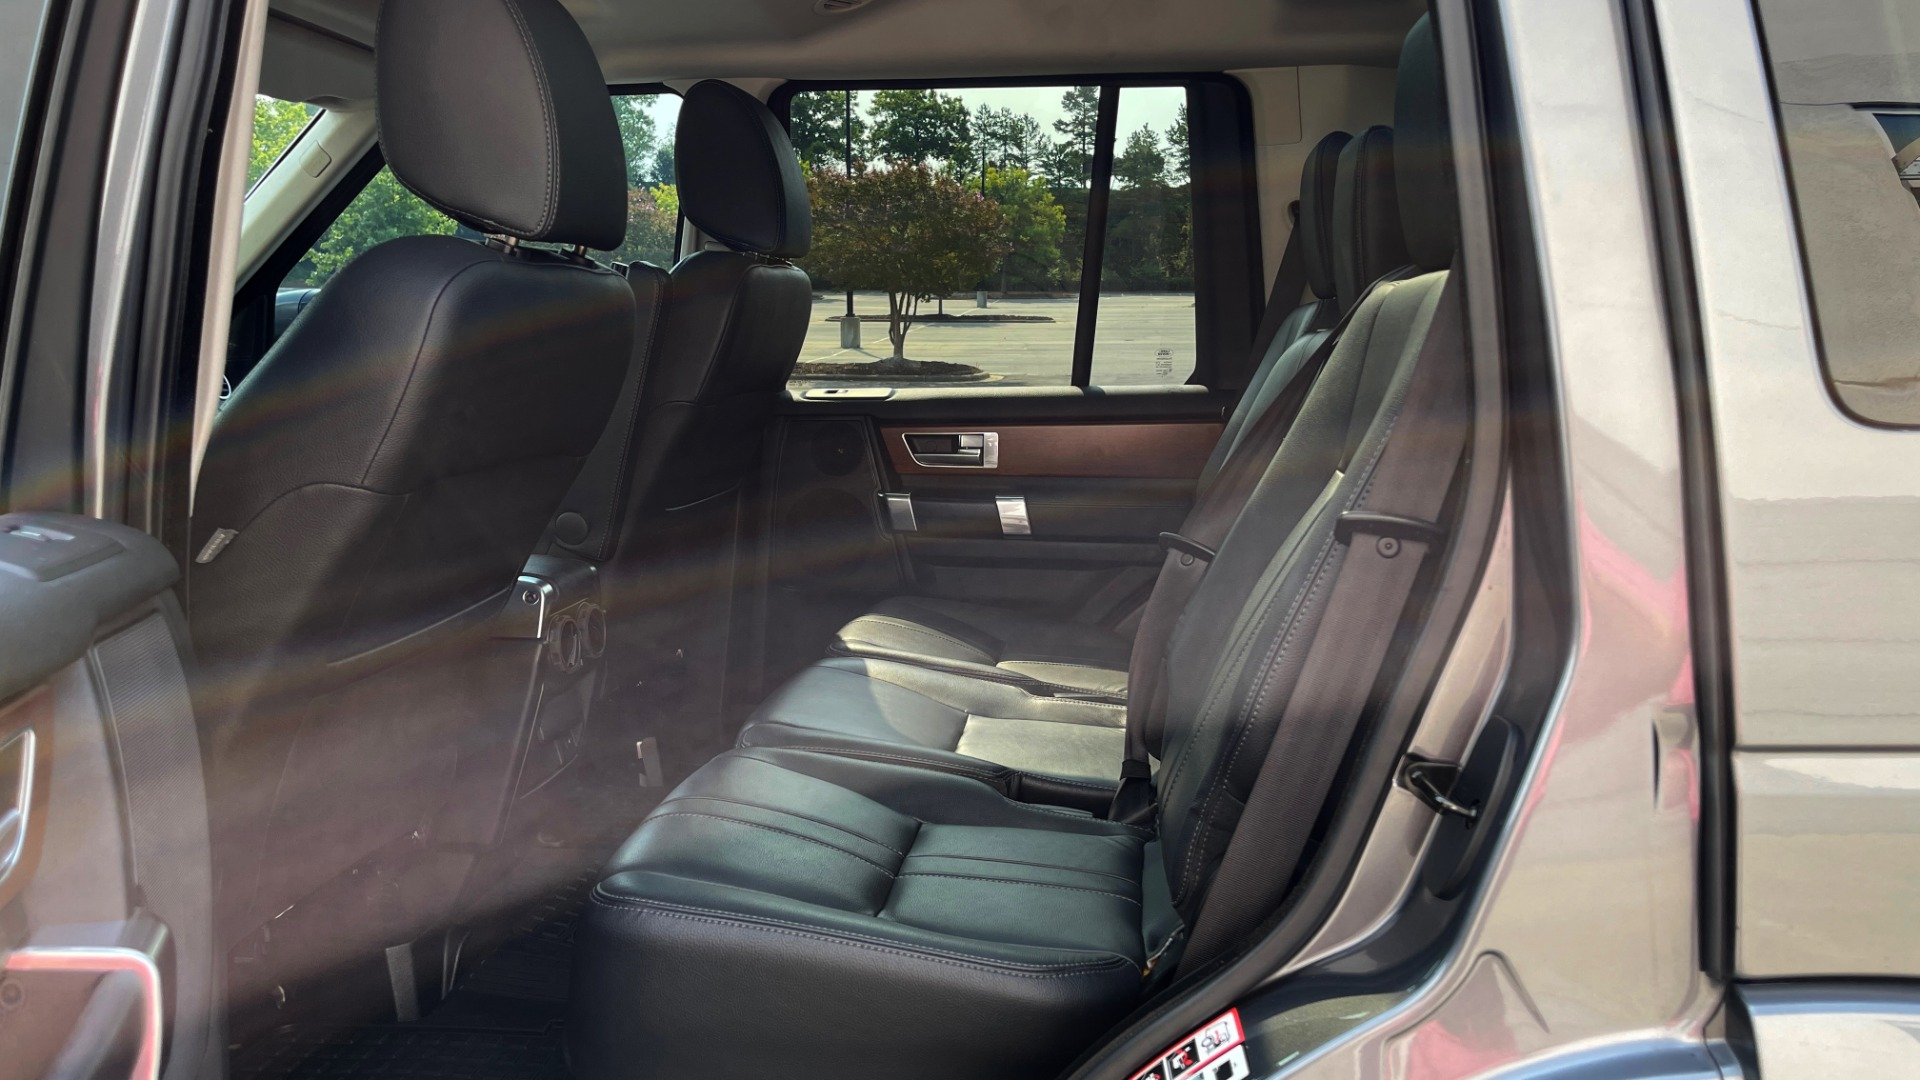 Used 2016 Land Rover LR4 HSE / NAV / SUNROOF / 3-ROW / MERIDIAN SOUND SYS / REARVIEW for sale $30,995 at Formula Imports in Charlotte NC 28227 44